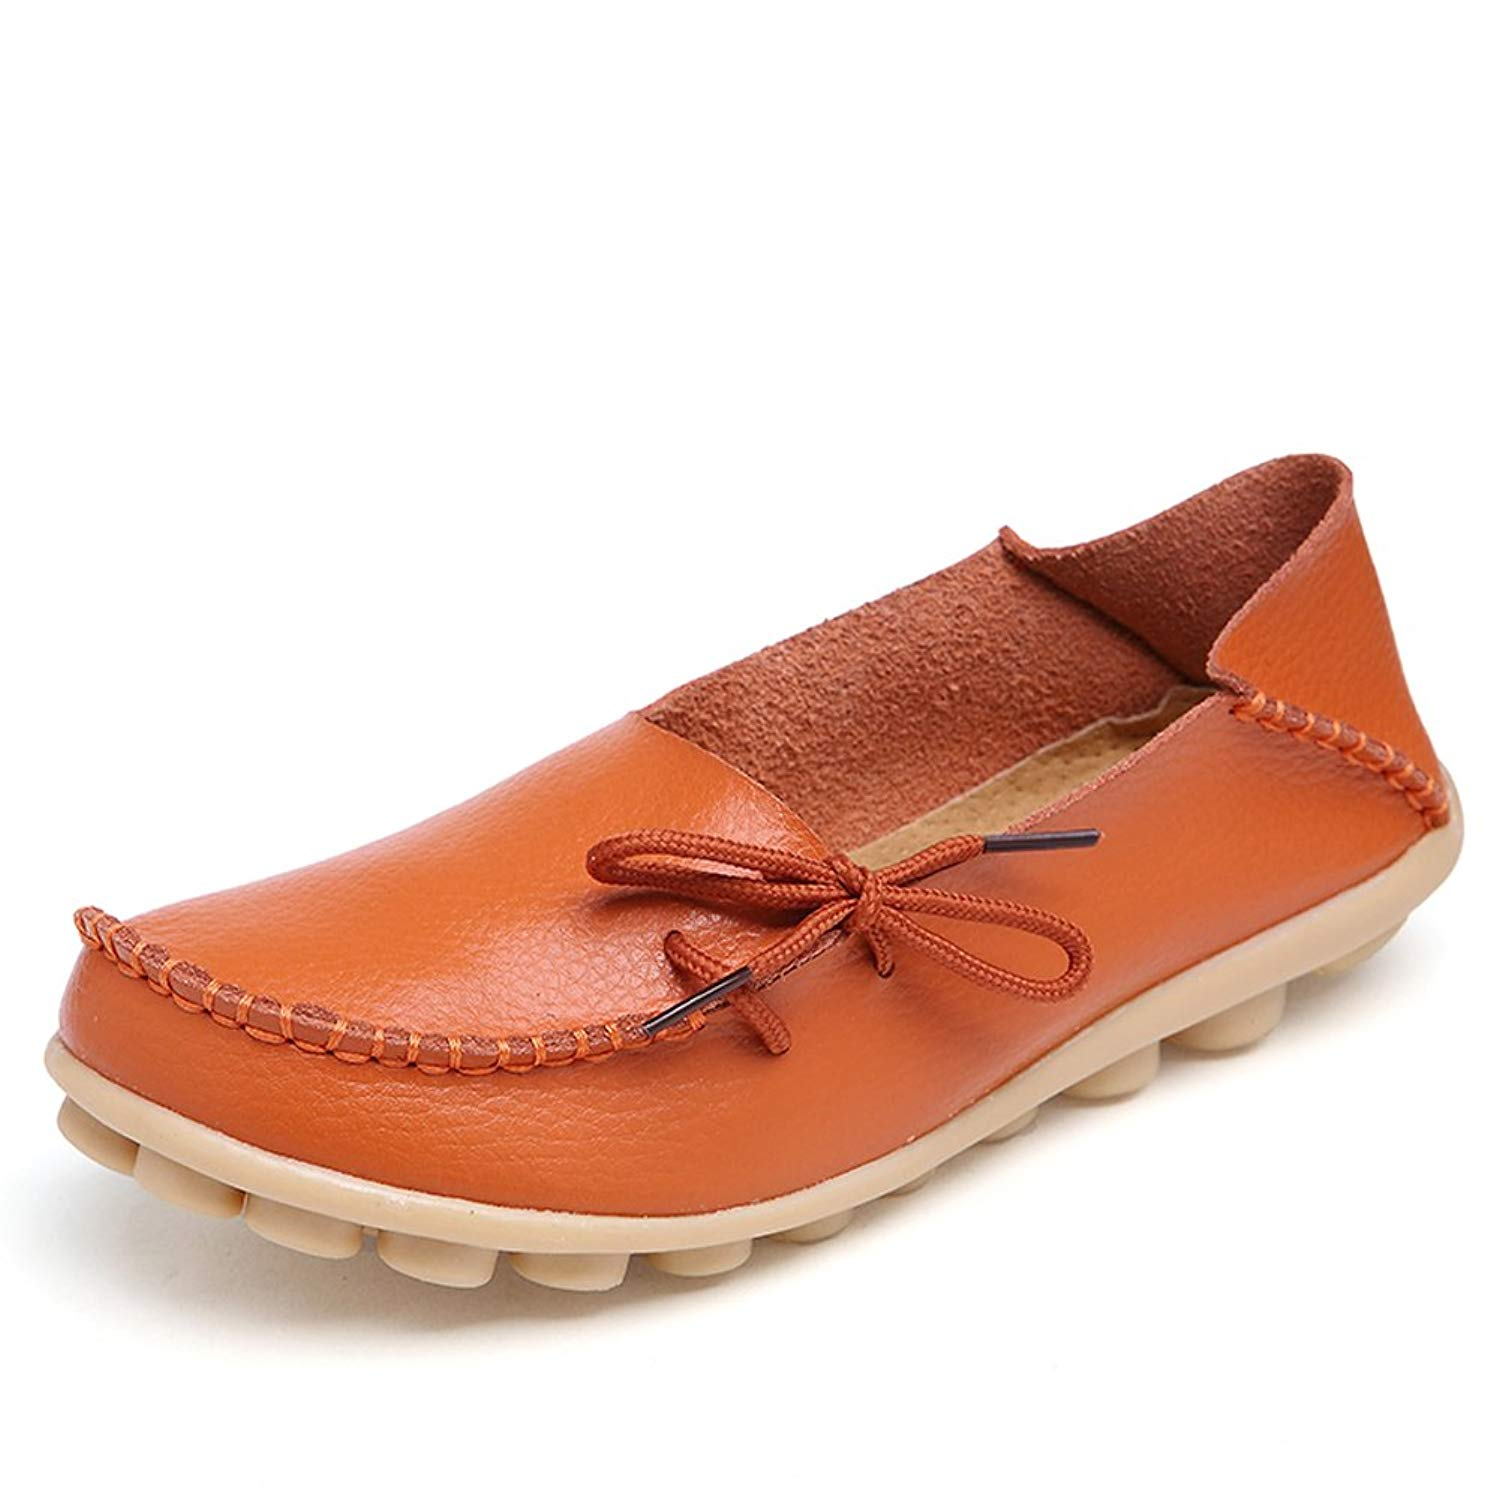 25079931d2f Get Quotations · Lucksender Womens Cowhide Leather Lace-Up Driving Shoes  Loafers Boat Shoes